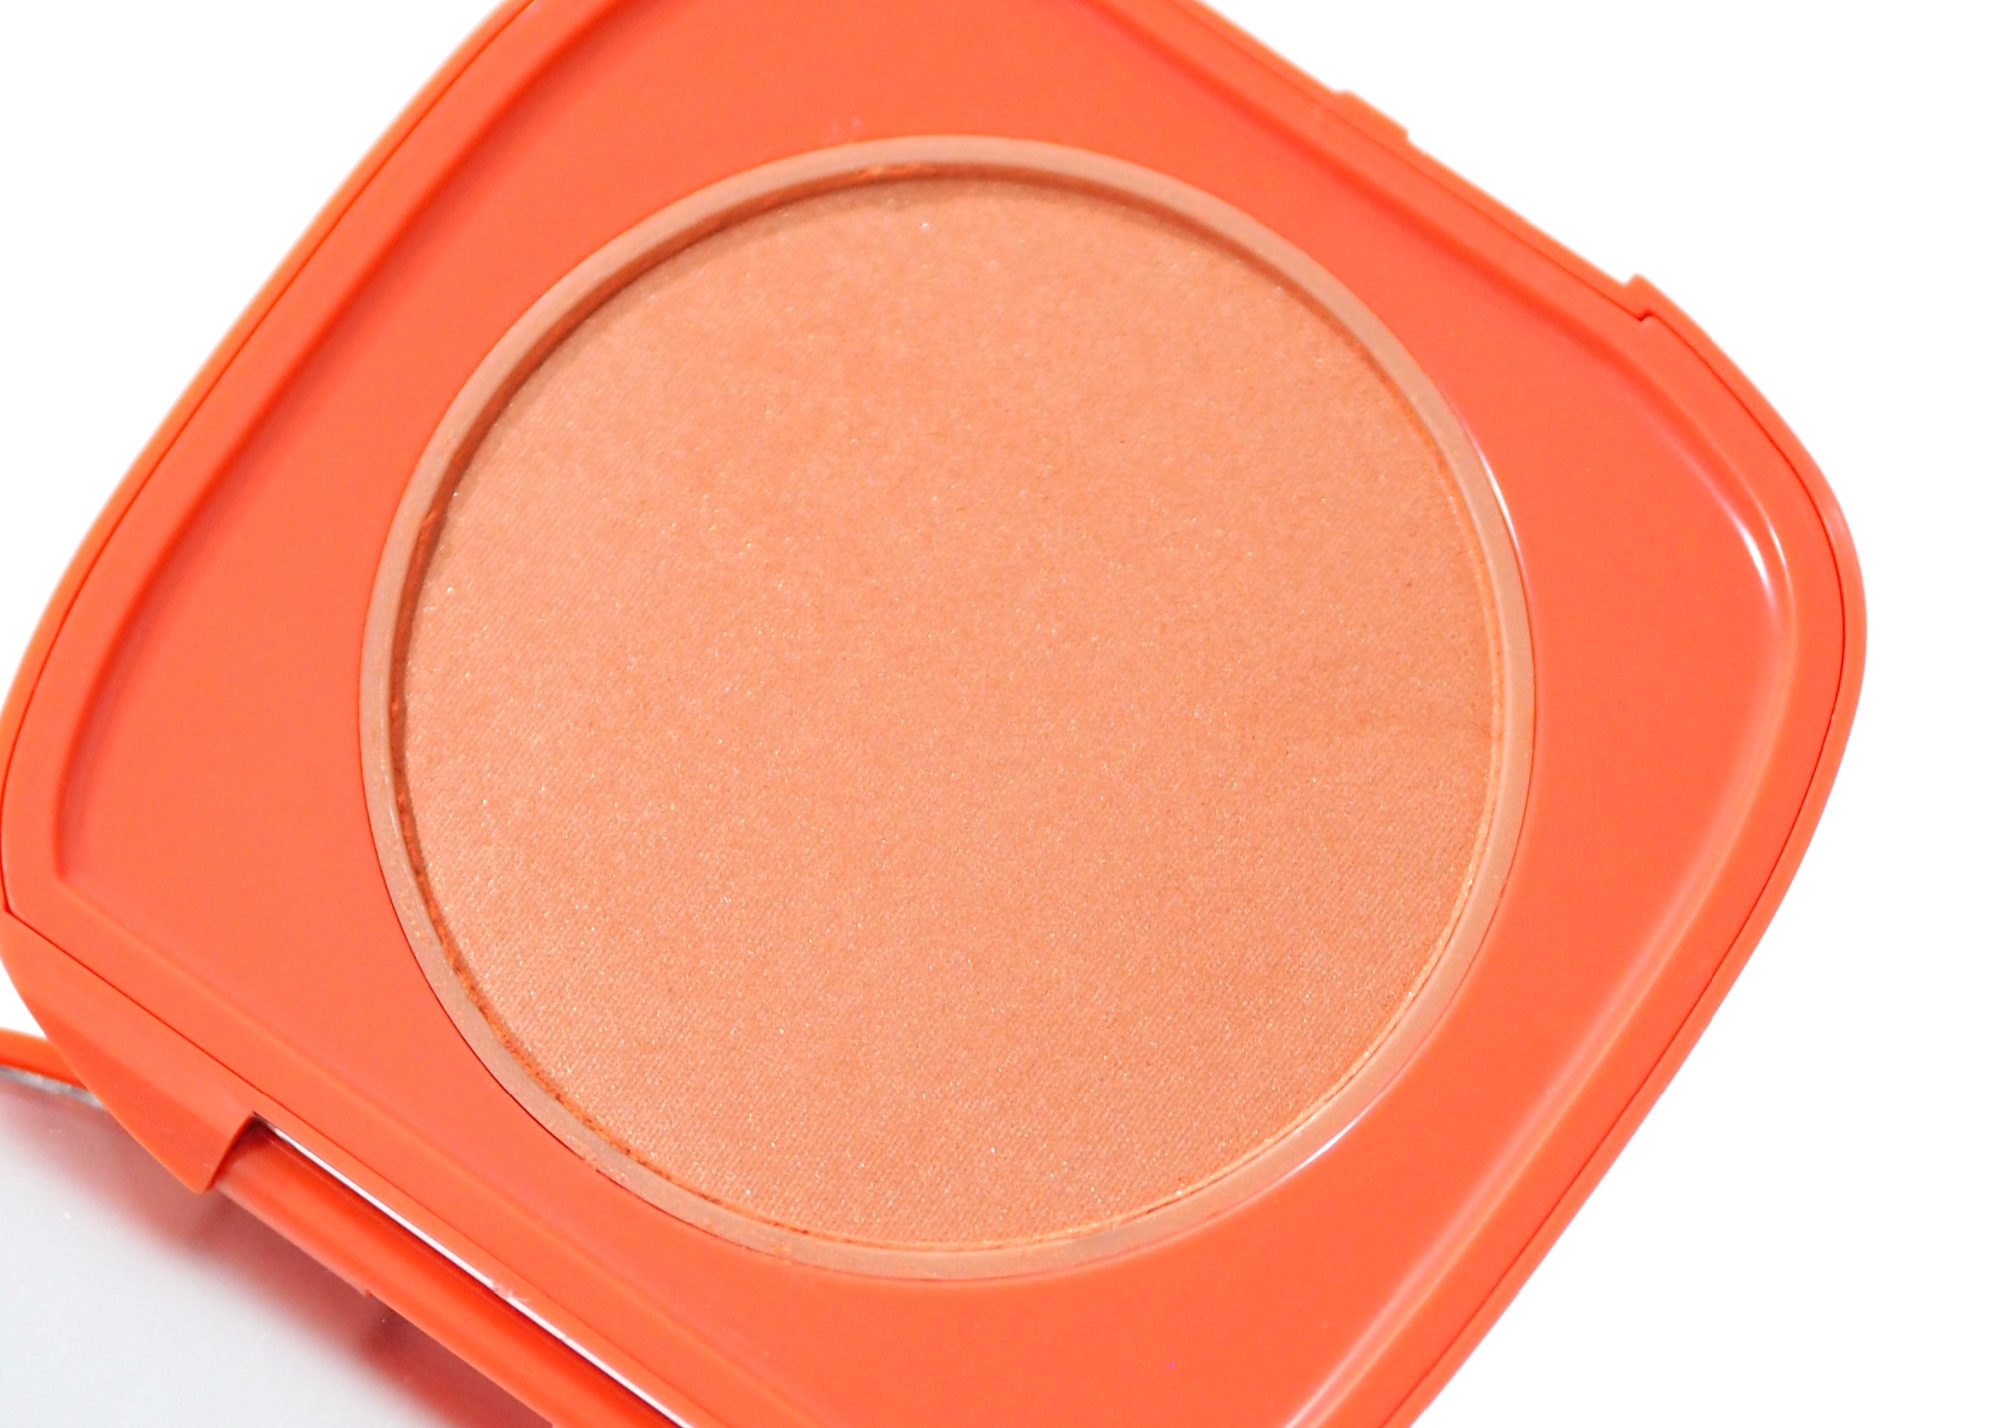 ColourPop Foxy Pressed Powder Blush Review Swatches